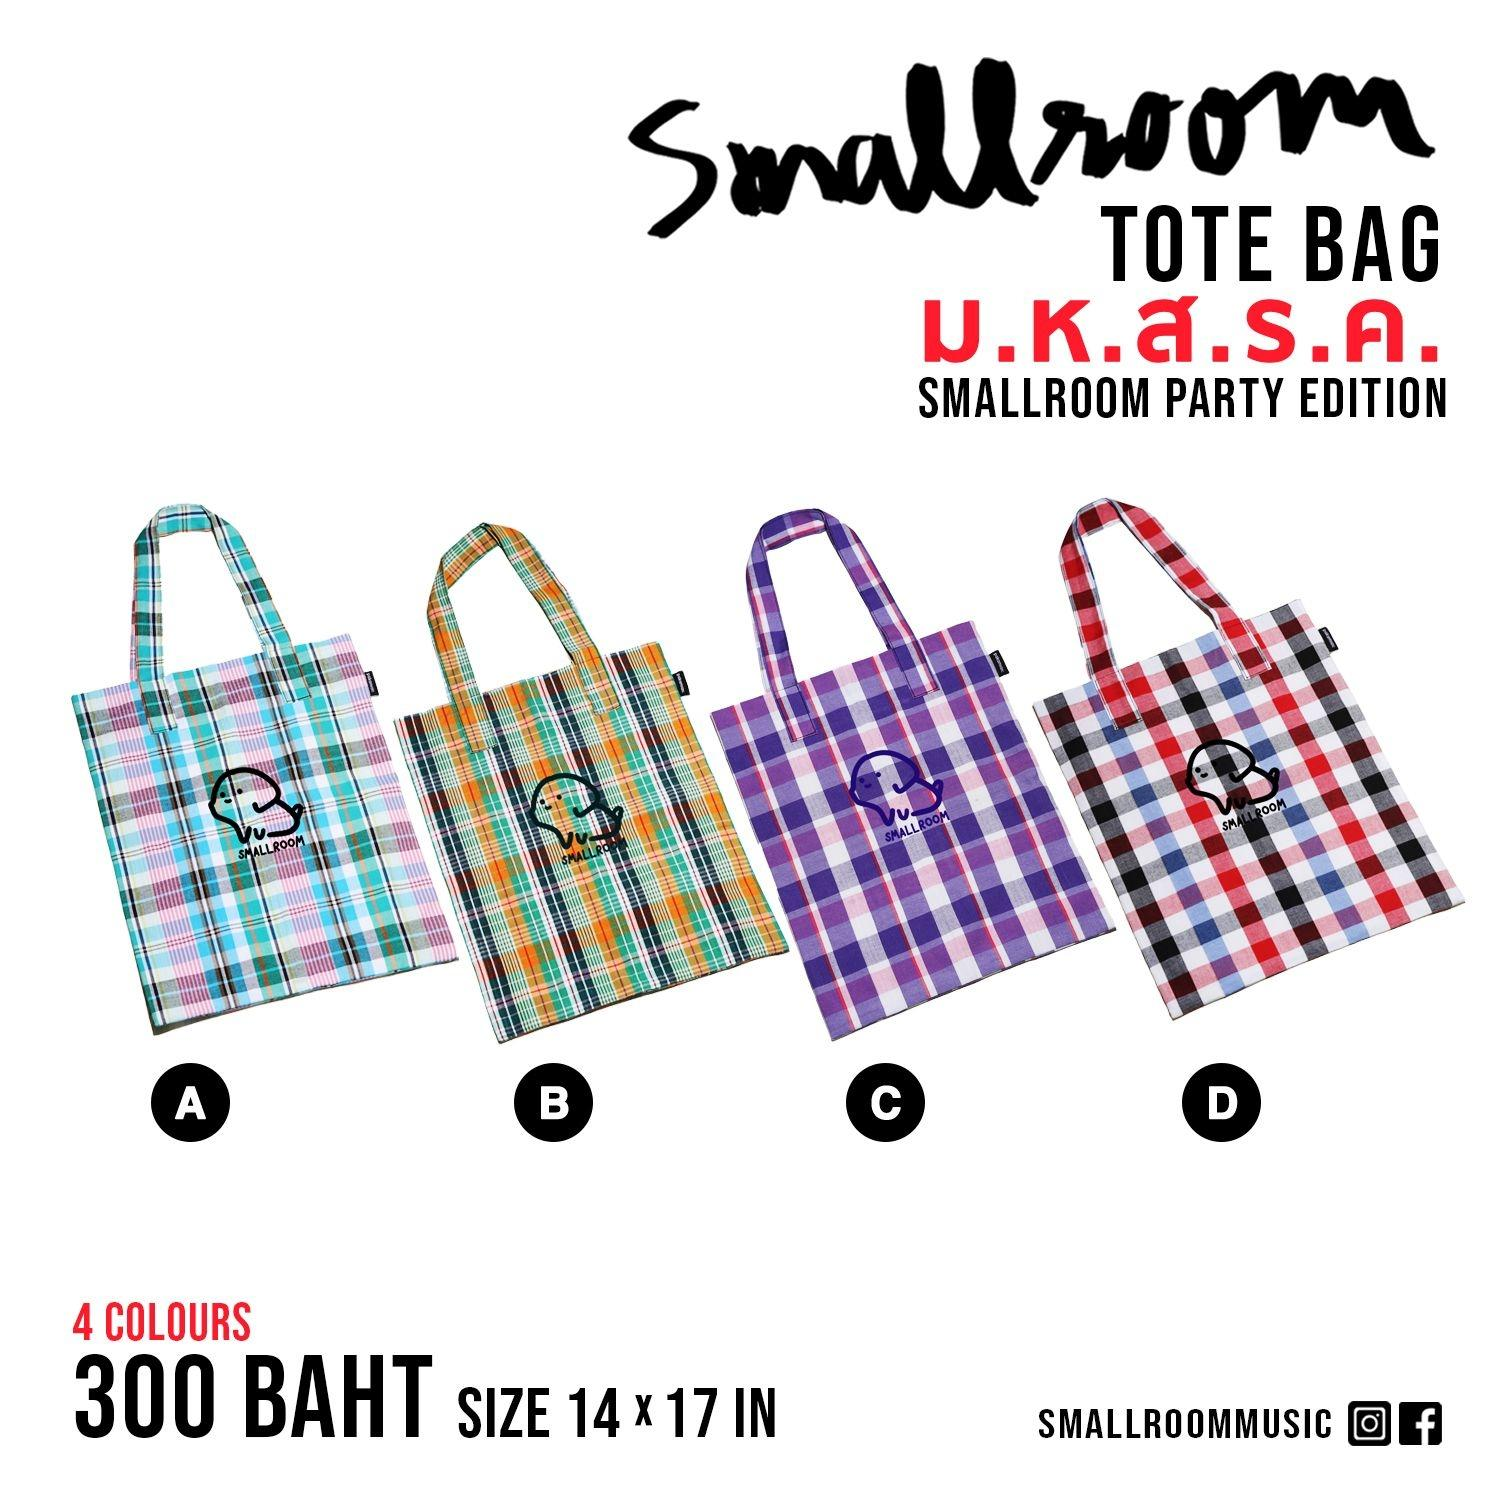 TOTE BAG ม.ห.ส.ร.ค. SMALLROOM PARTY EDITION